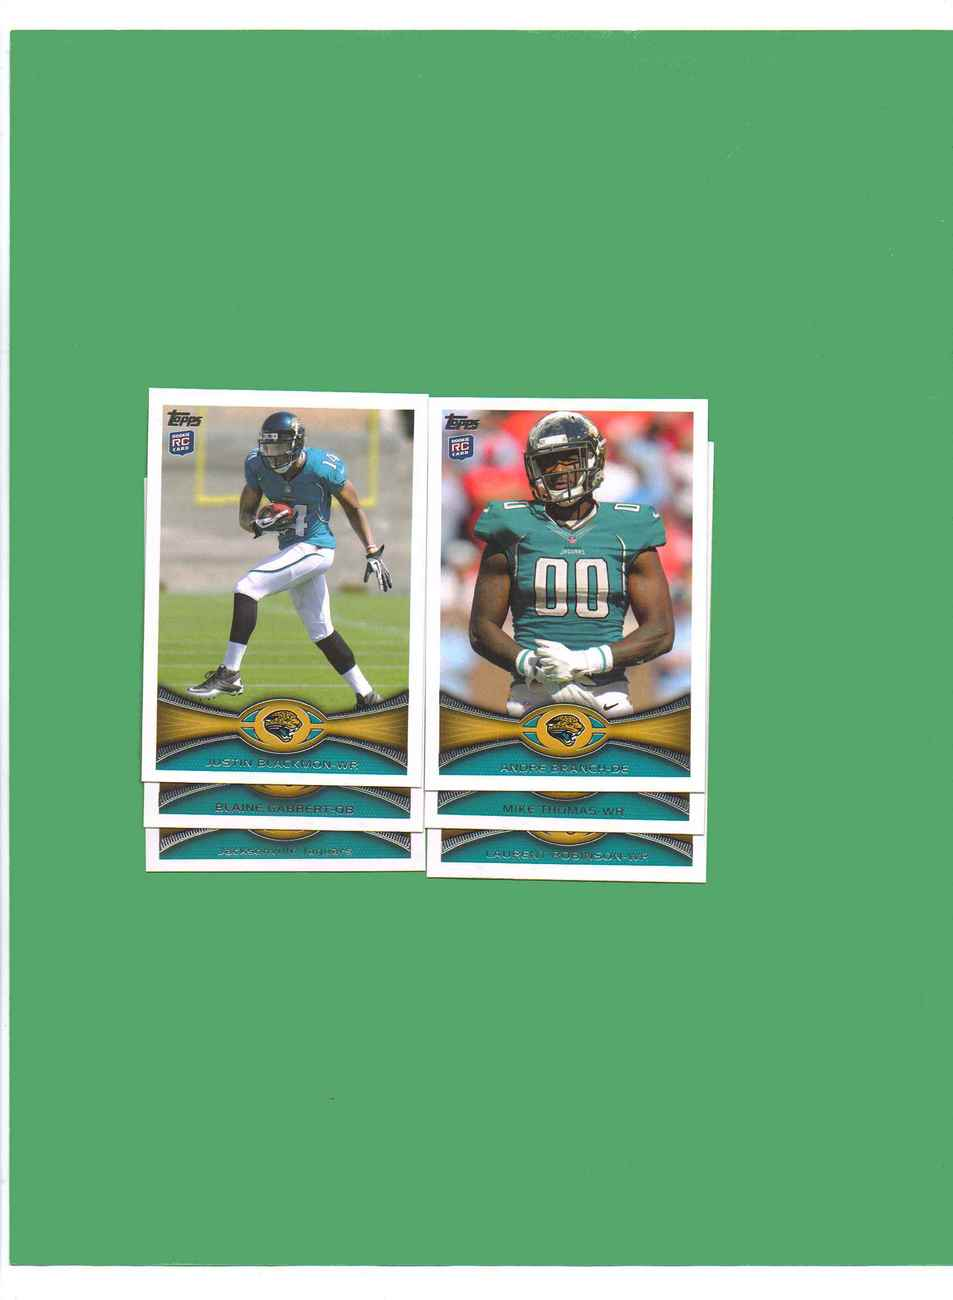 Primary image for 2012 Topps Jacksonville Jaguars Football Set